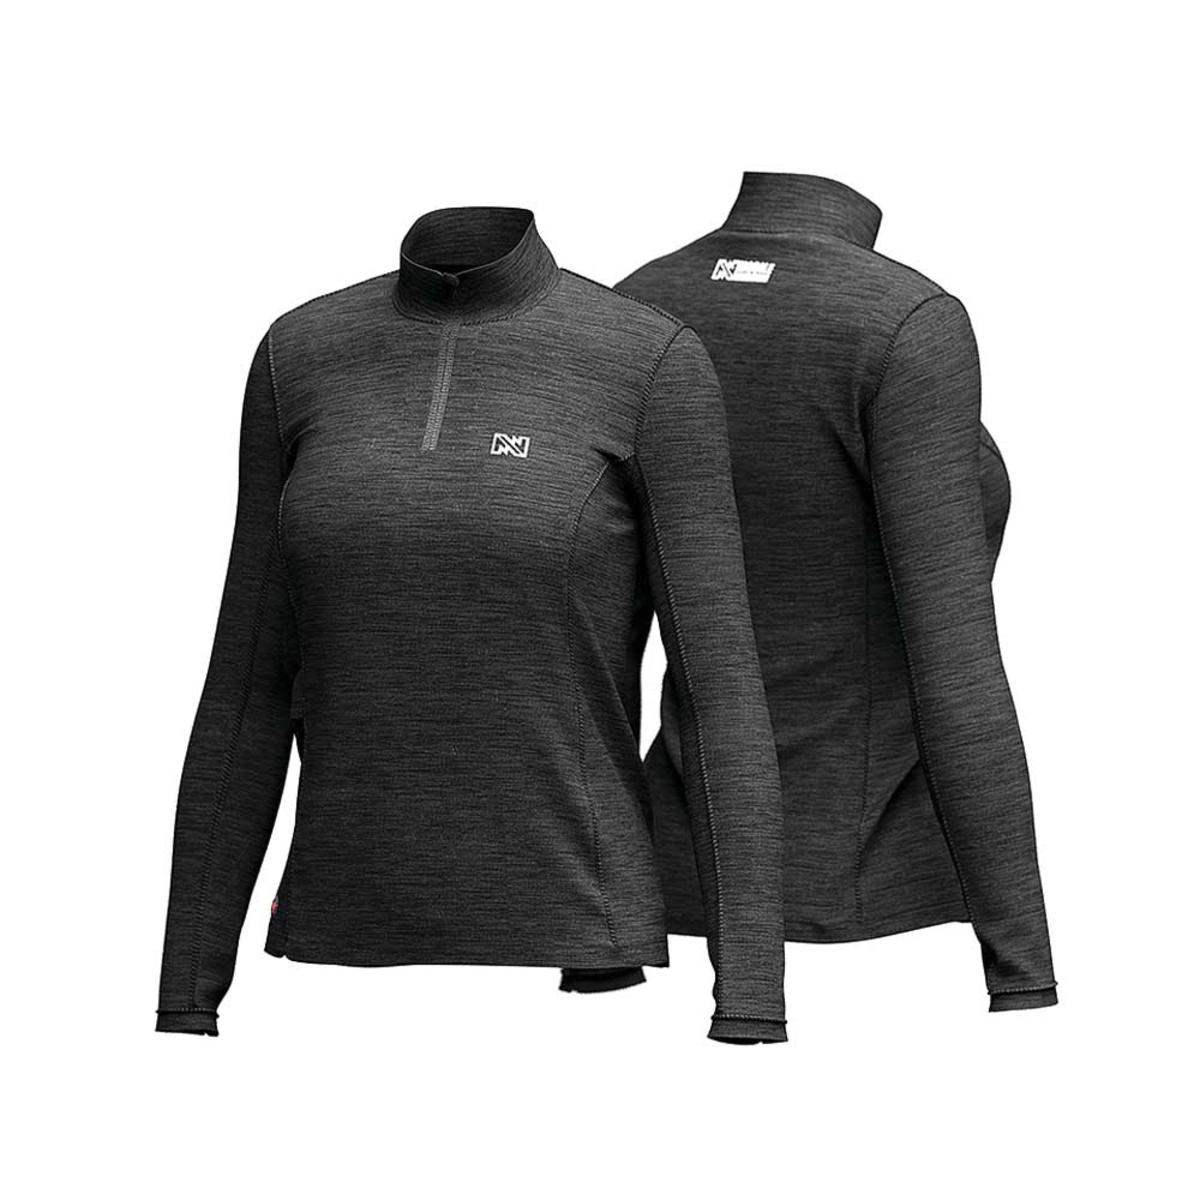 b857474d9e1f3 Mobile Warming 7.4V Women's Ion Heated Baselayer Shirt - The Warming Store